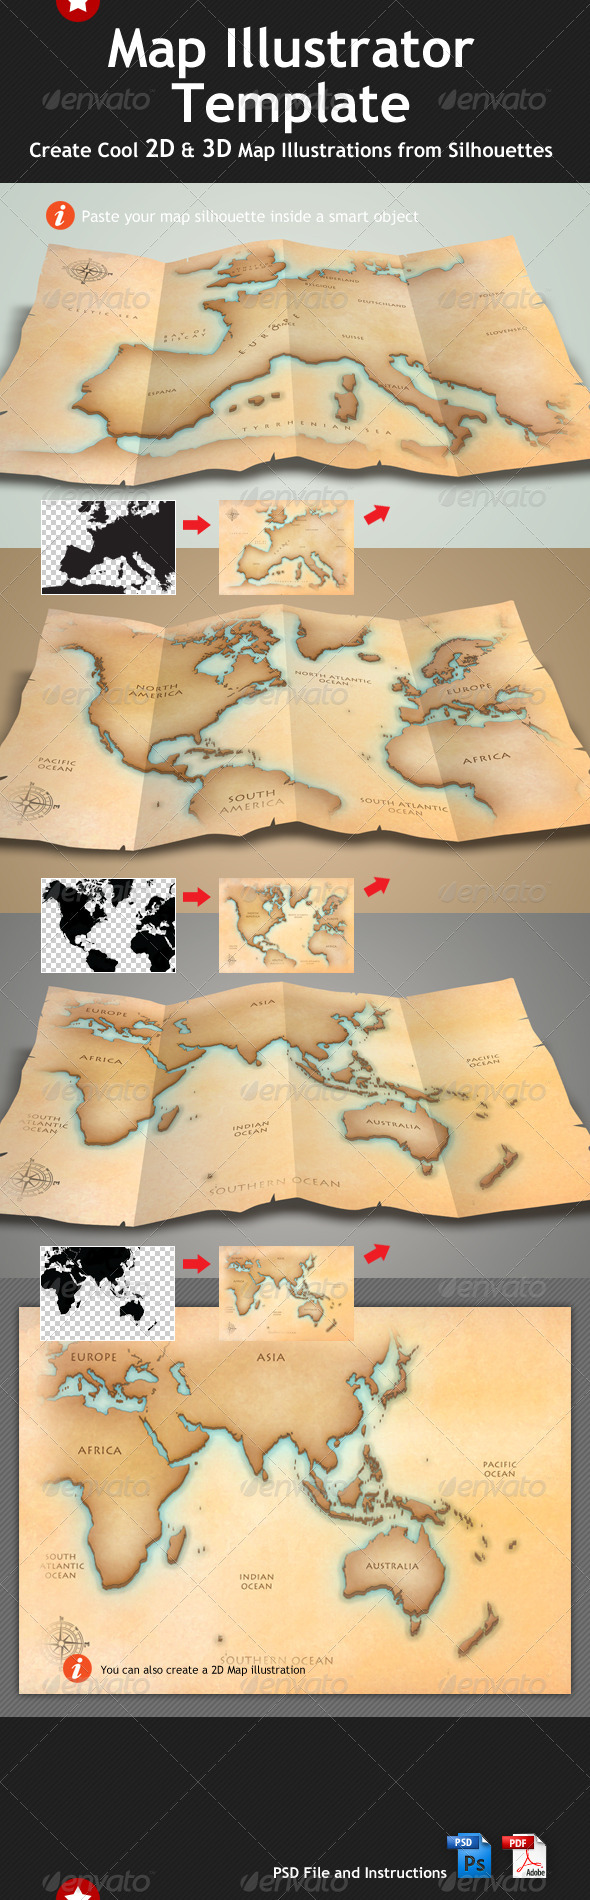 Map Illustrator &amp; Mock Up Template - Miscellaneous Print